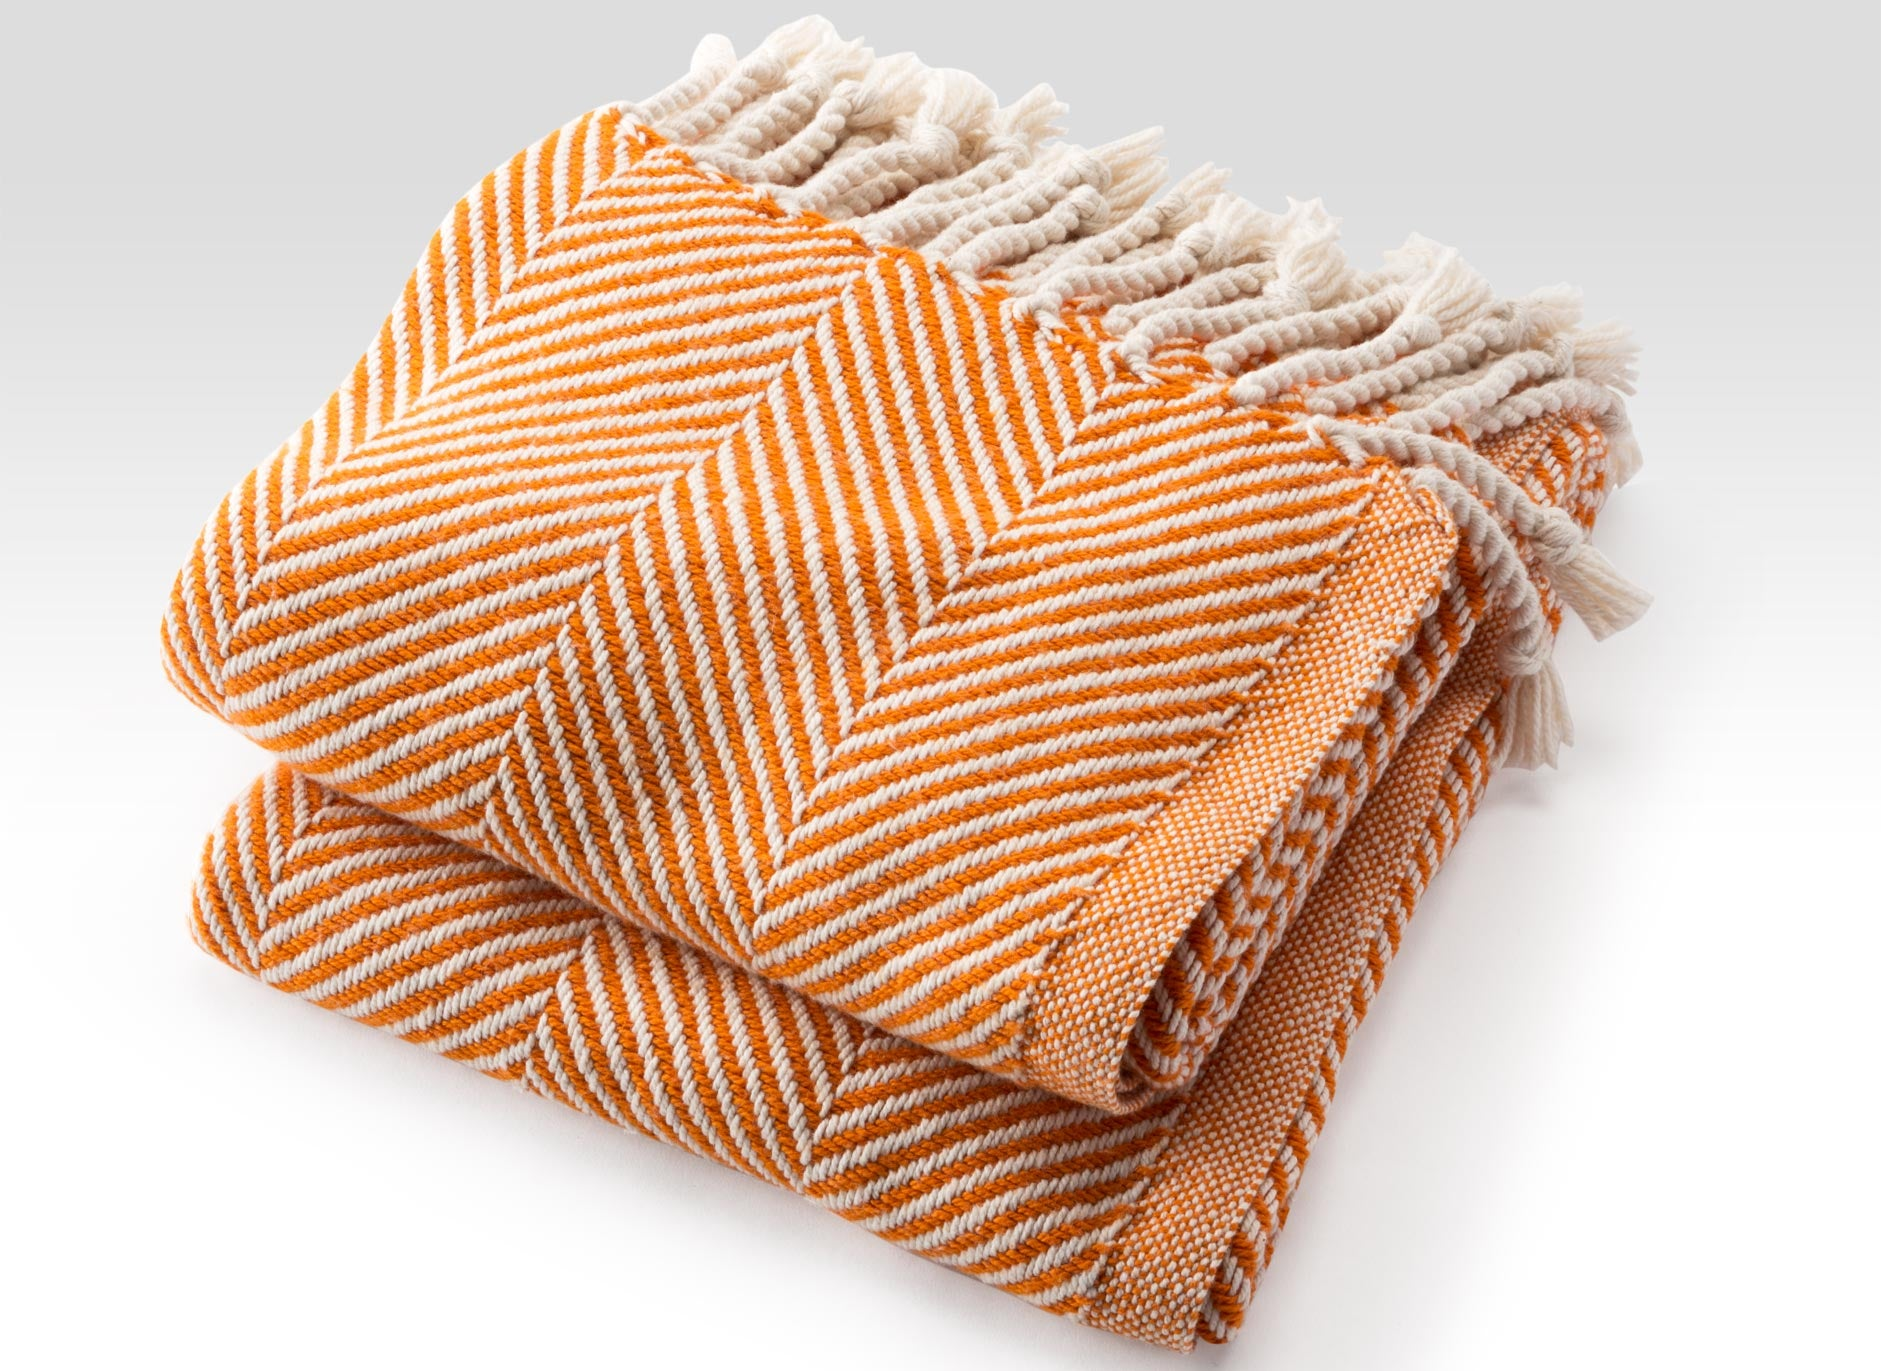 Autumn Natural Cotton Herringbone Throw